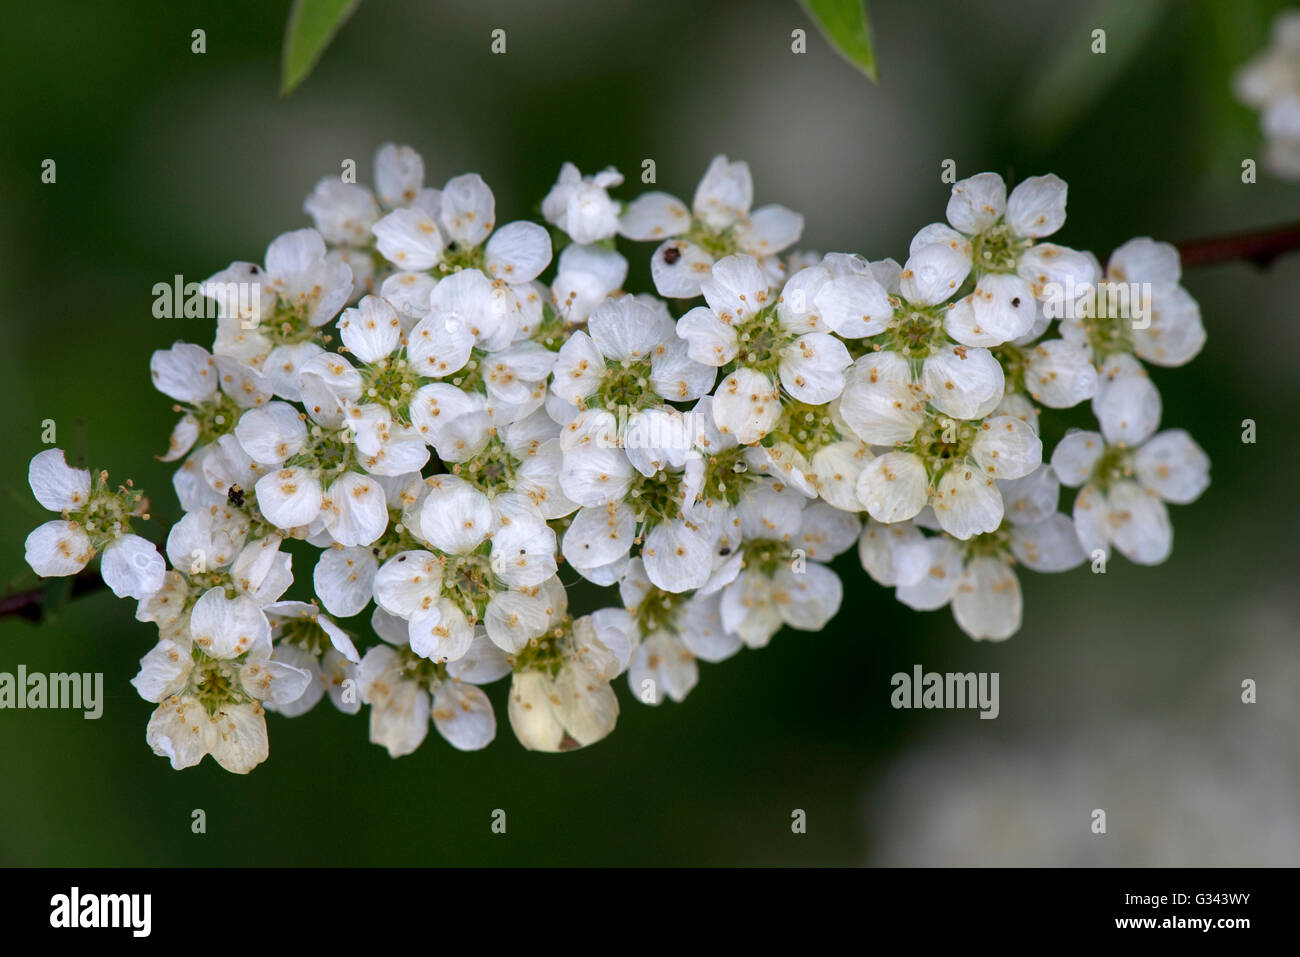 Bridal wreath or foam of may, Spirea 'Arguta', clusters of white flowers in spring, Berkshire, May - Stock Image